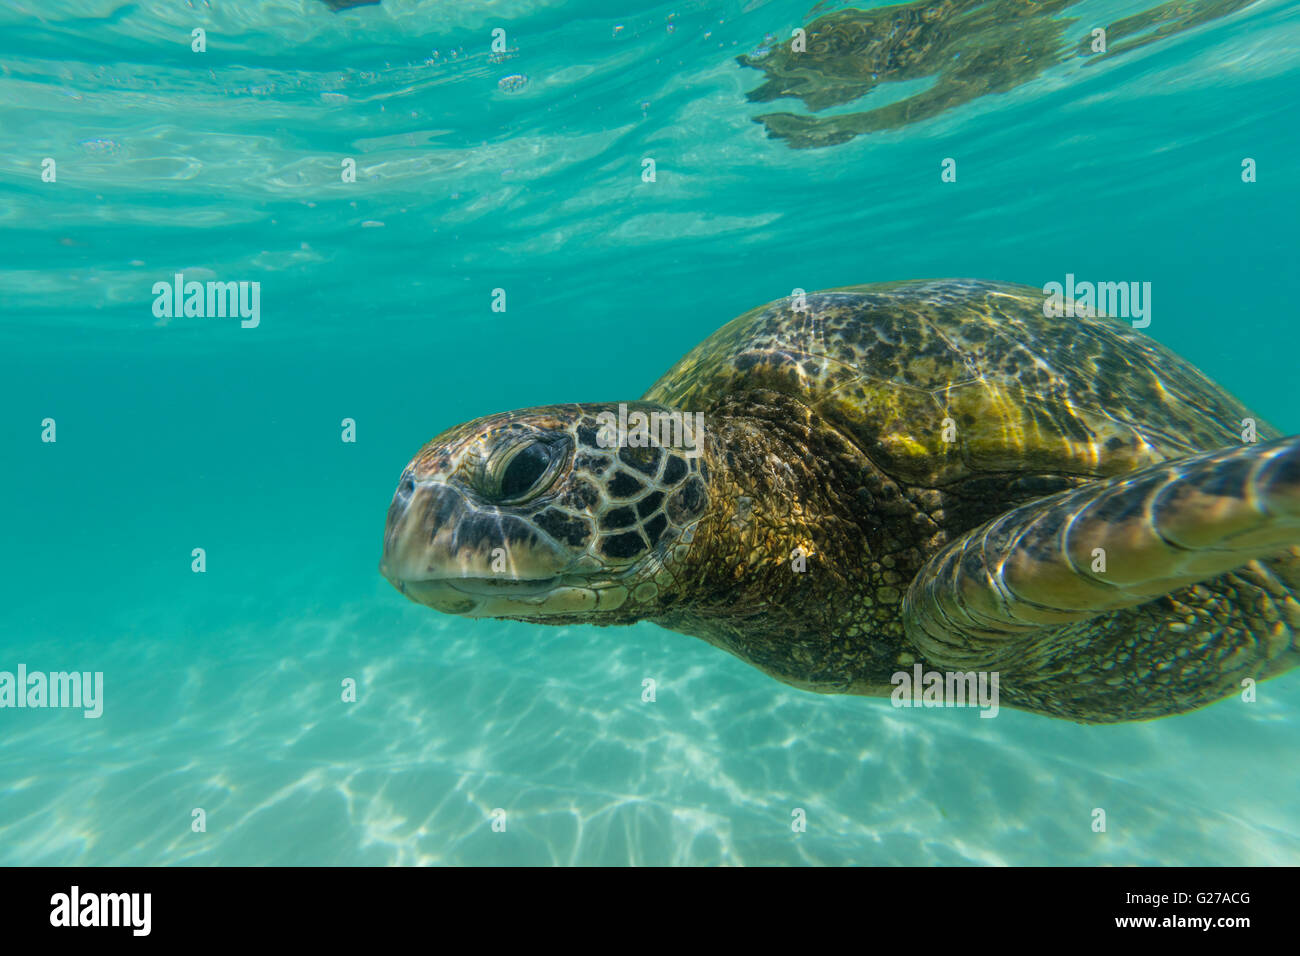 A close up view of a green sea turtle swimming in the ocean. - Stock Image